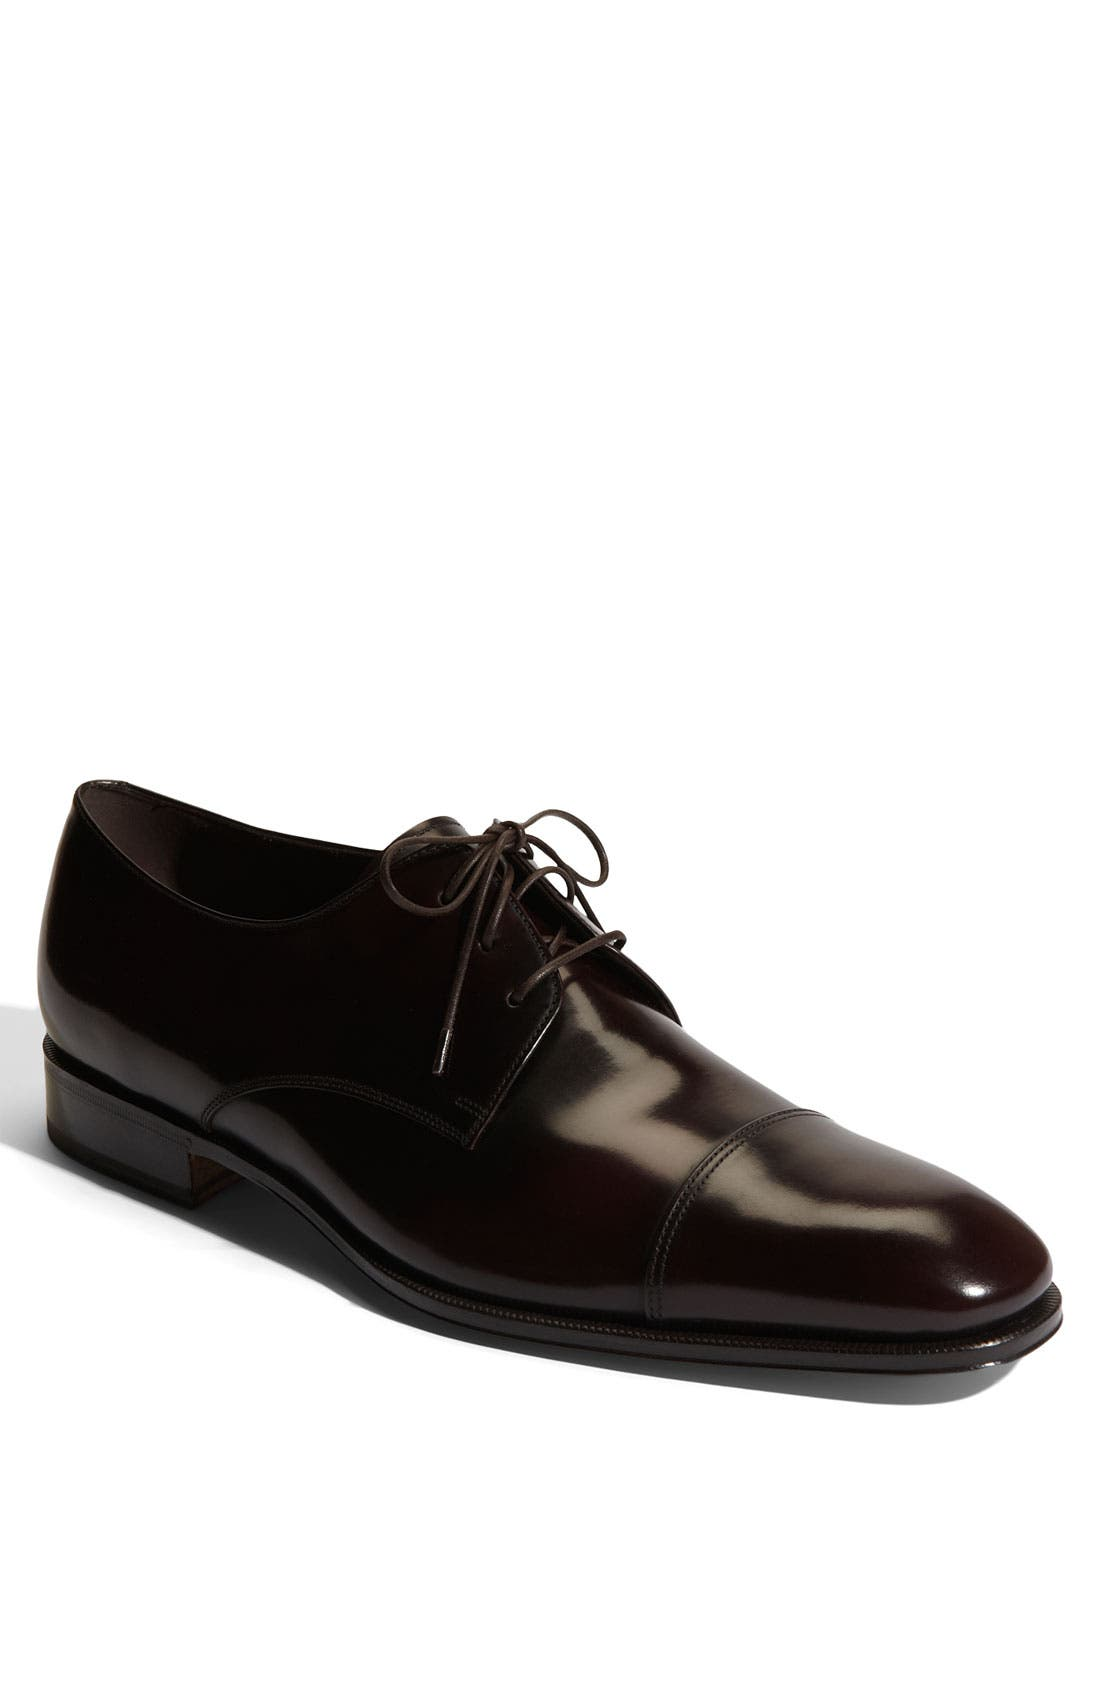 Alternate Image 1 Selected - Salvatore Ferragamo 'Faraone' Cap Toe Oxford (Men)